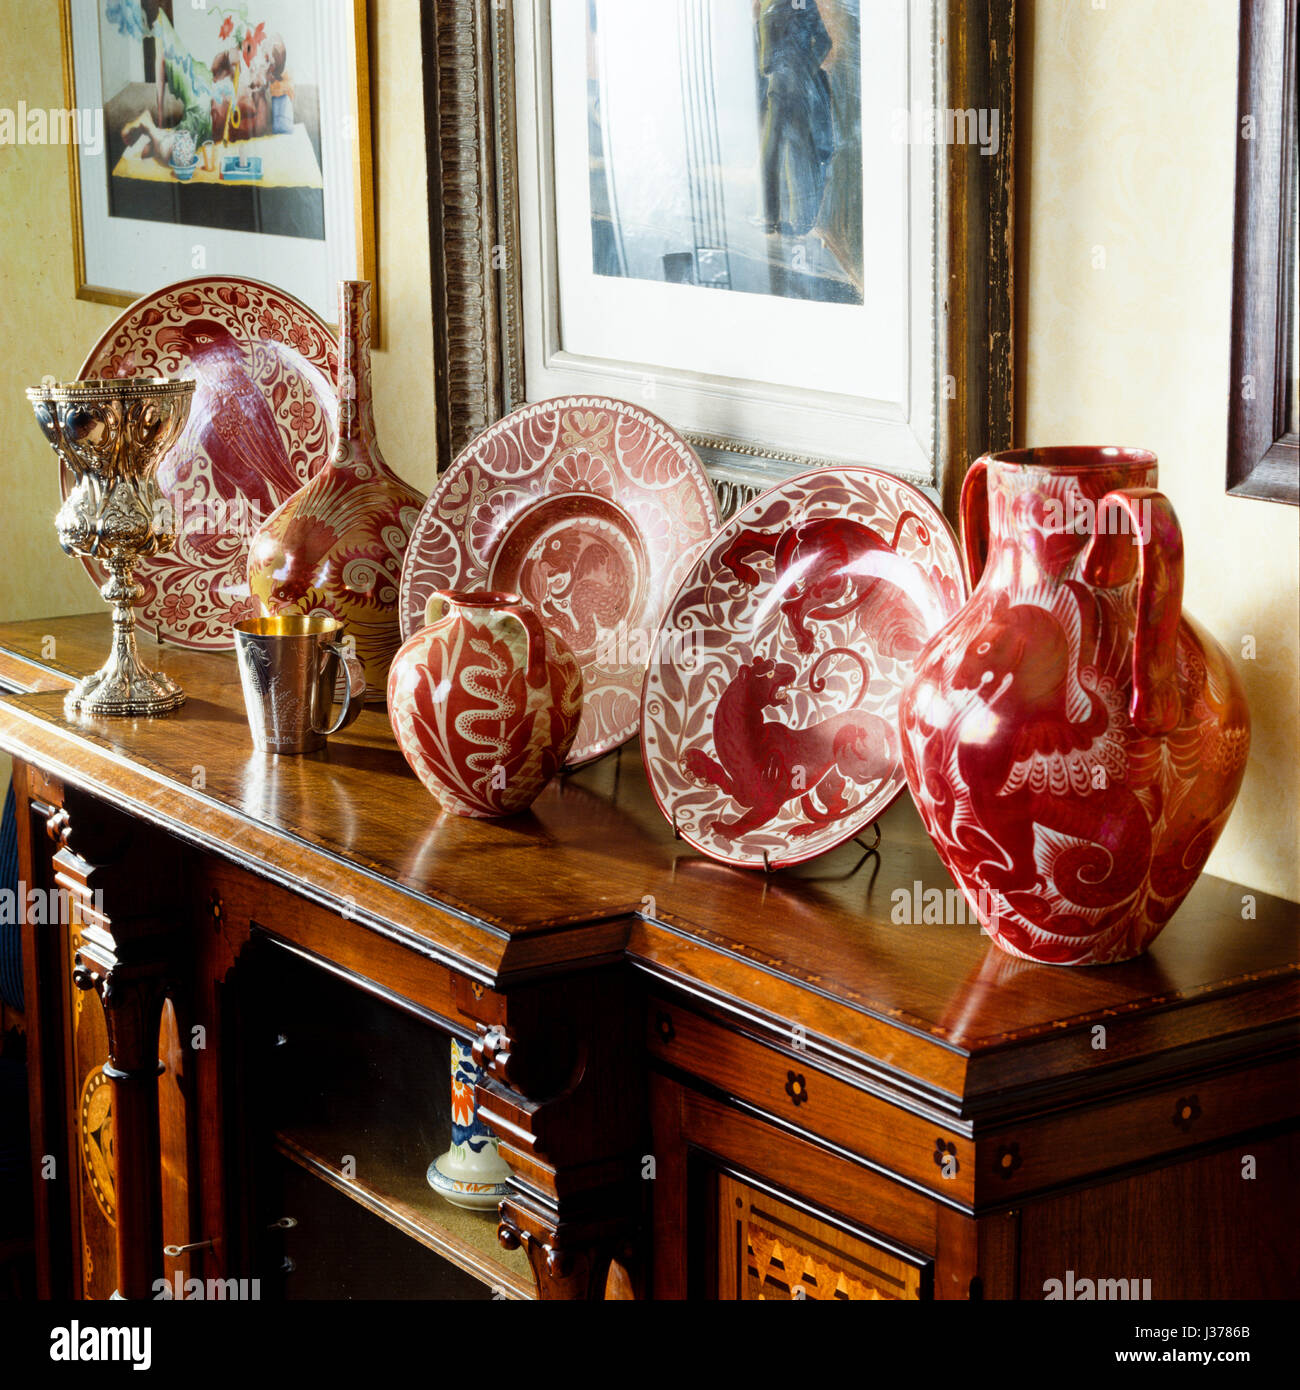 Cabinet with plates and jugs. Stock Photo